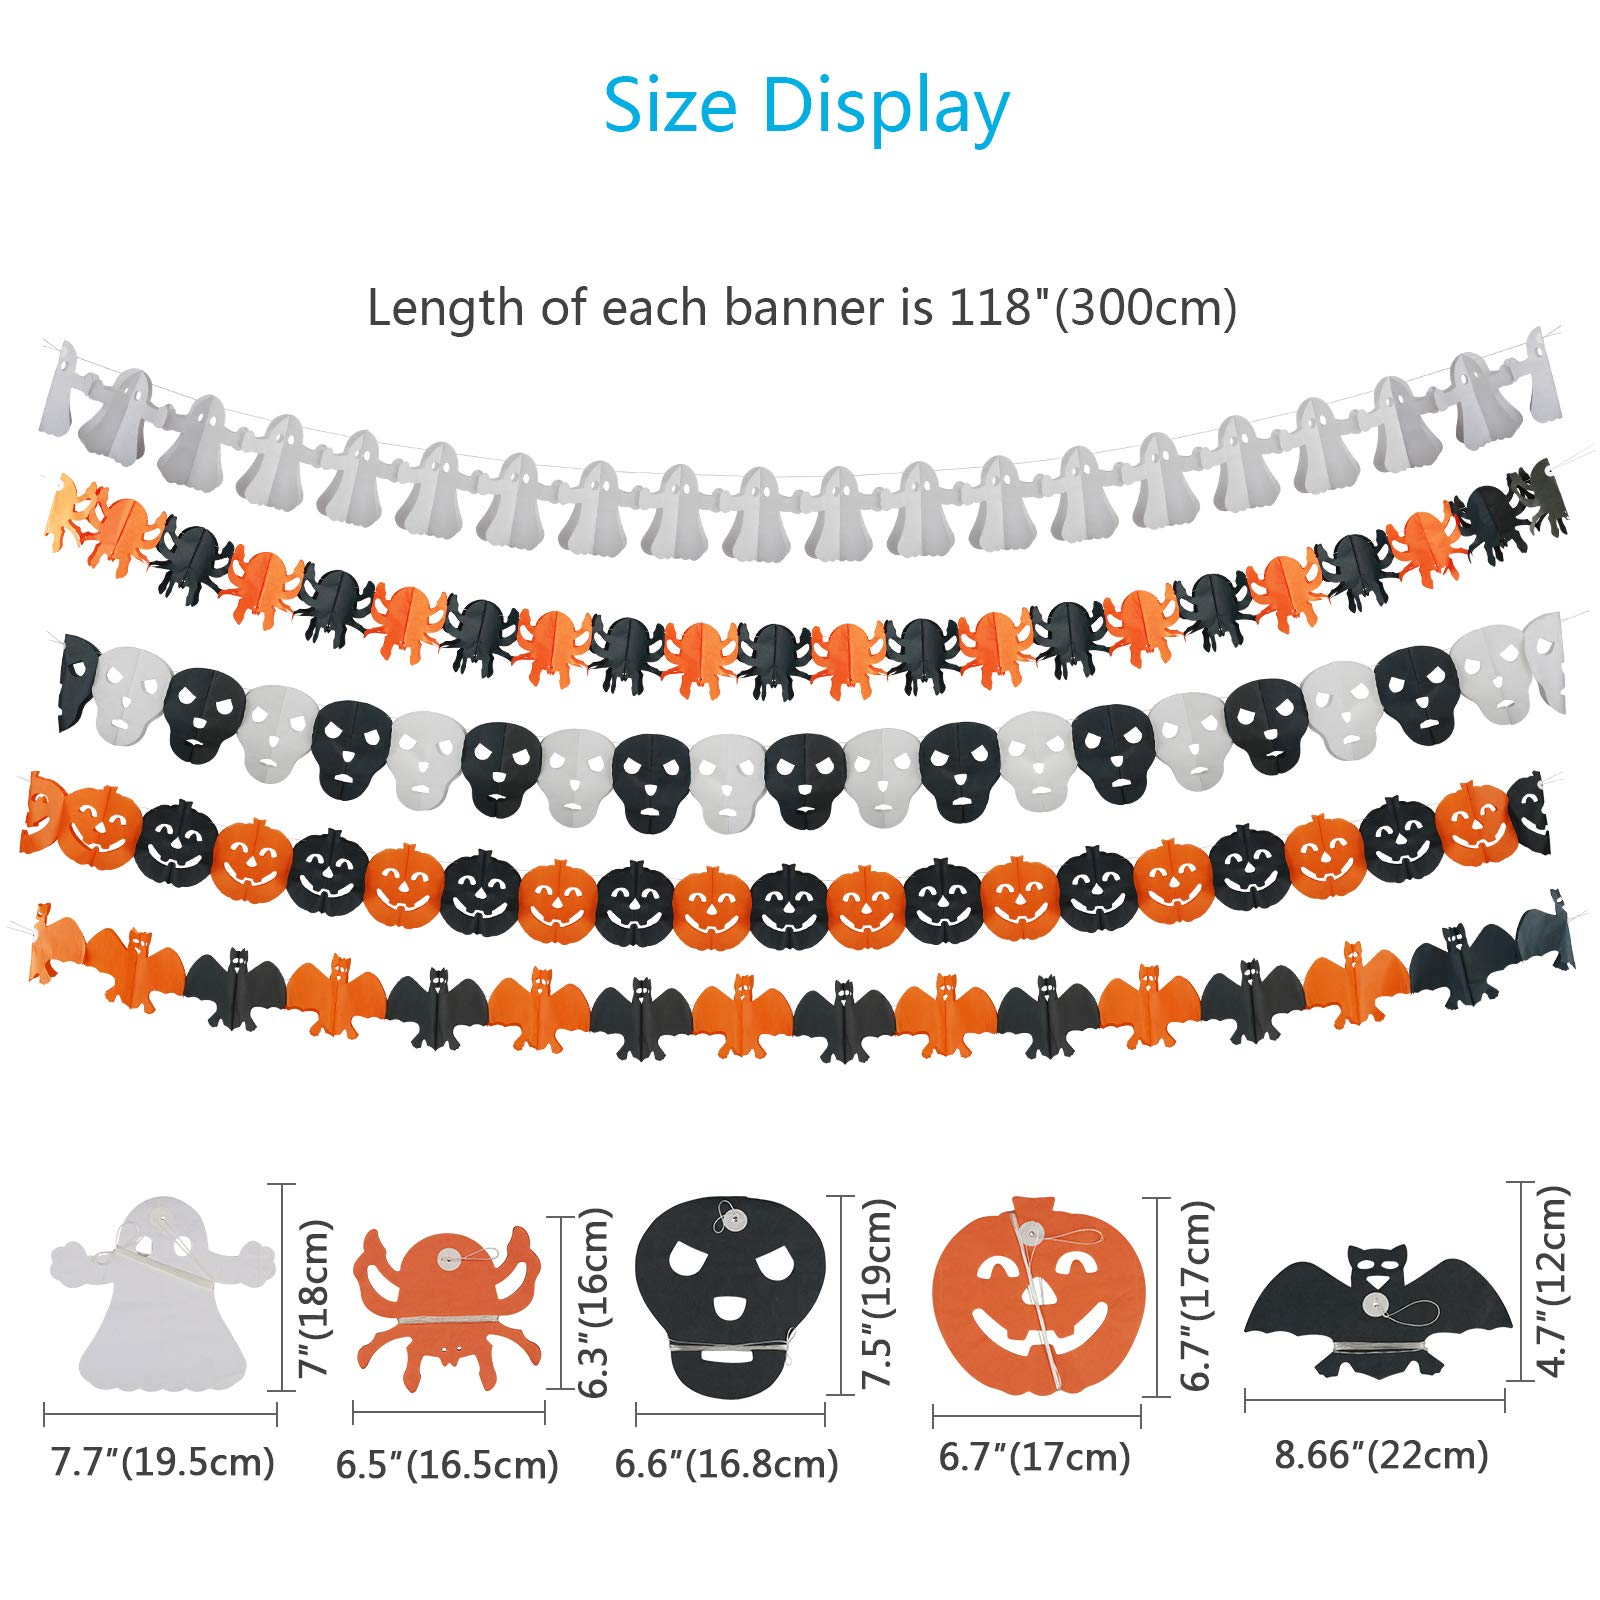 KATOOM Halloween Decoration Banner 5 Pcs Halloween Party Banners Trick or Treat Garland Pumpkin Bat Spooky Pennants Spiders Ghost Set for Halloween Theme Party Photo Props Wall Decoration Supplies